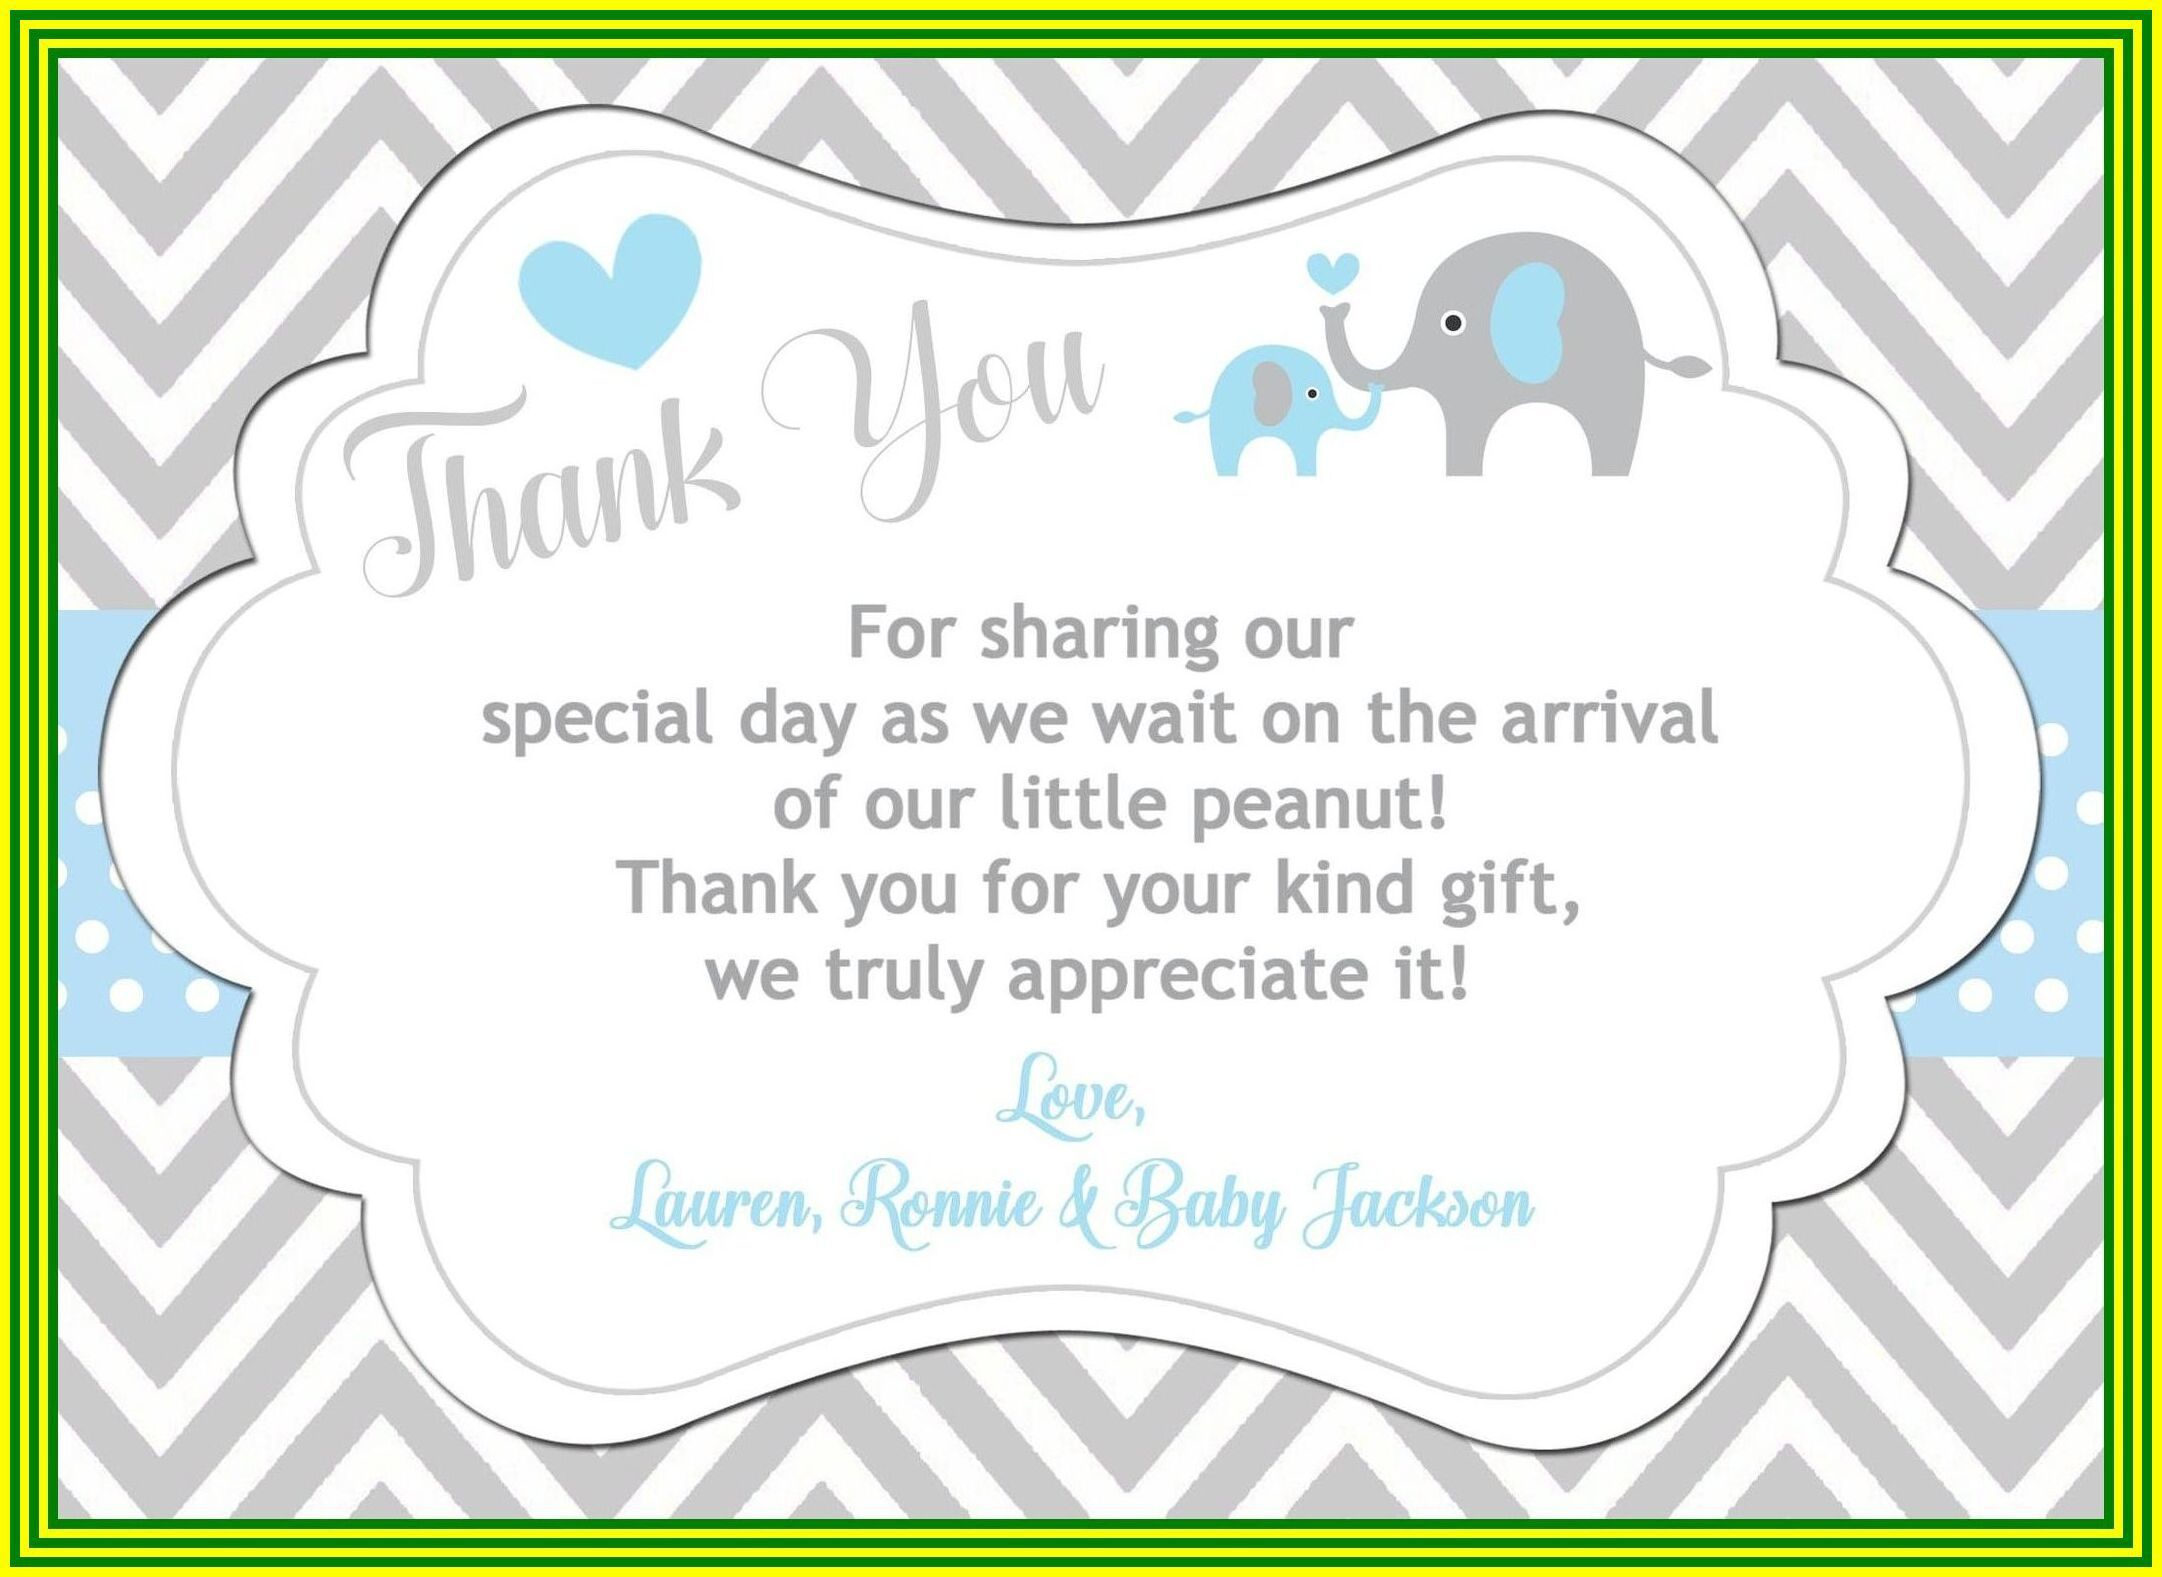 000 Imposing Thank You Card Wording Baby Shower Image  Note For Money Someone Who Didn't Attend HostesFull